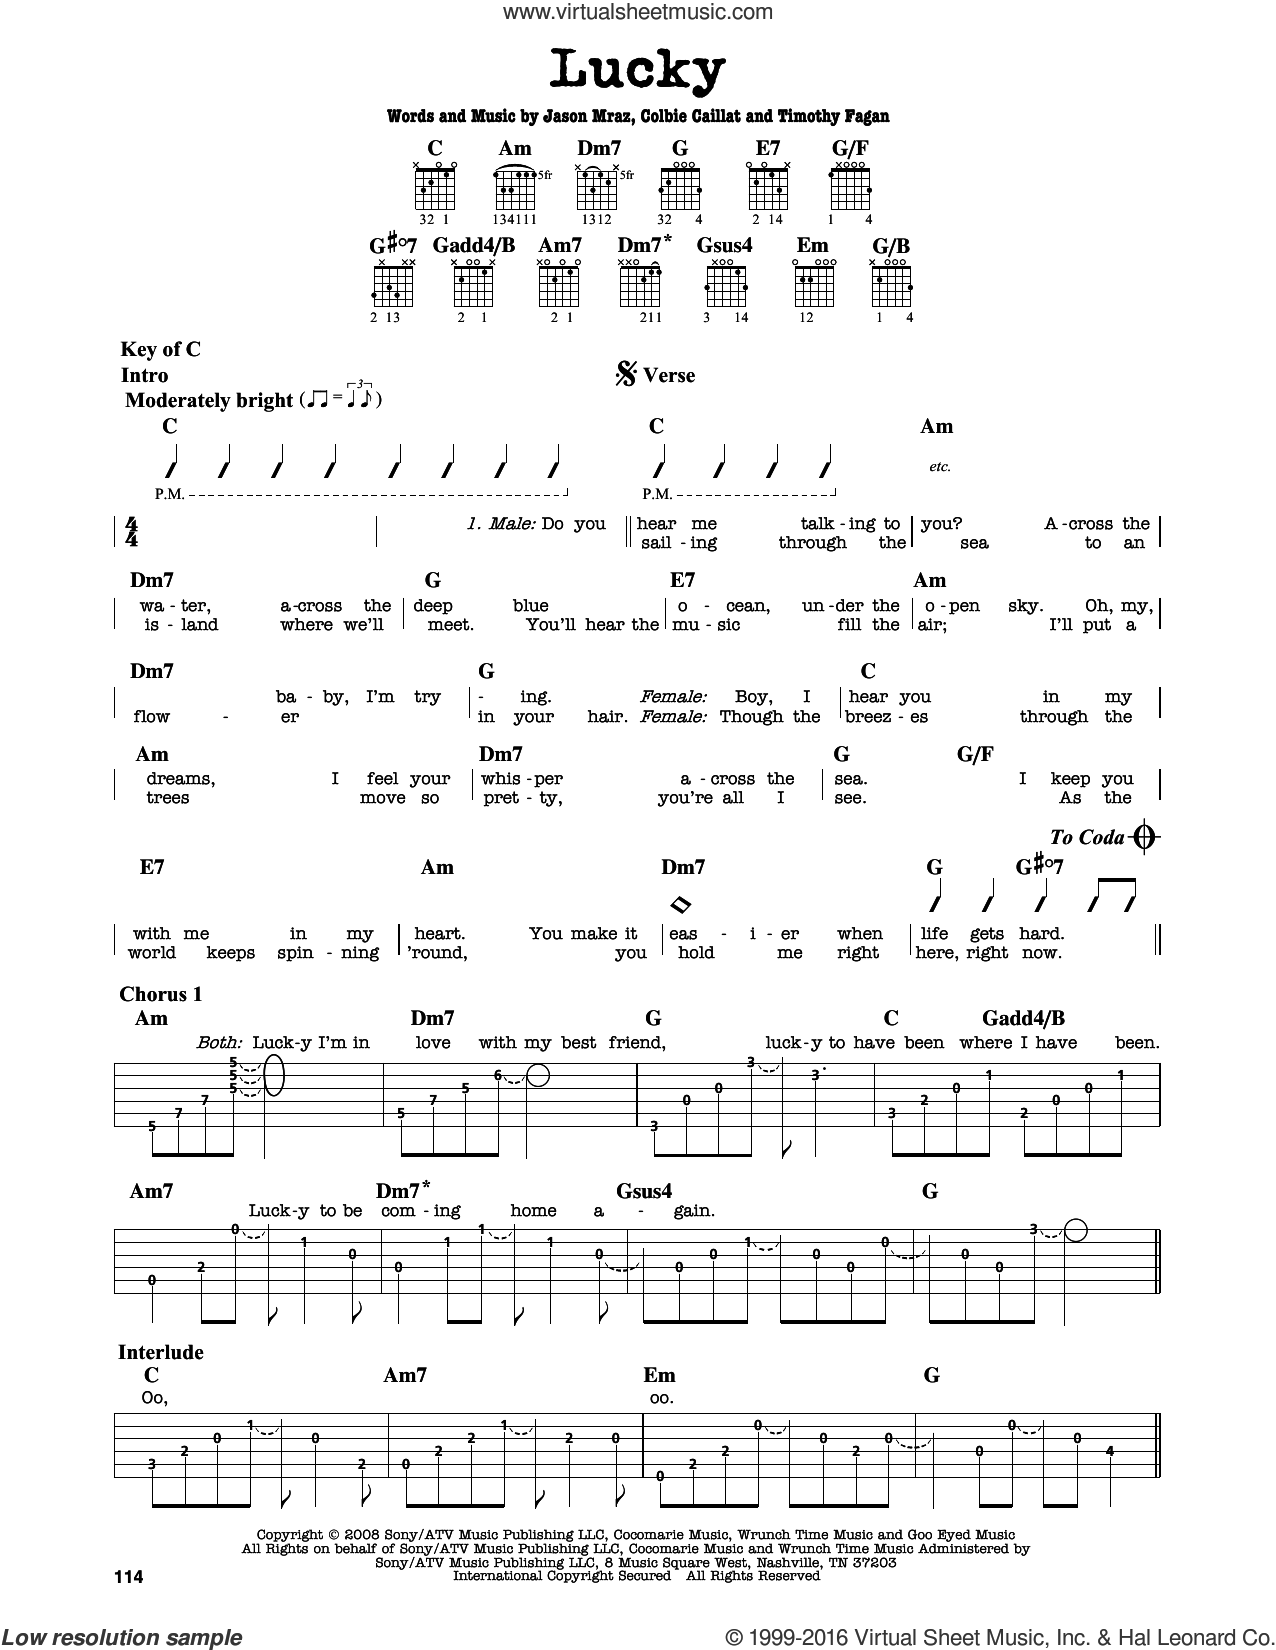 Lucky sheet music for guitar solo (lead sheet) by Jason Mraz & Colbie Caillat, Colbie Caillat, Jason Mraz and Timothy Fagan, intermediate guitar (lead sheet)